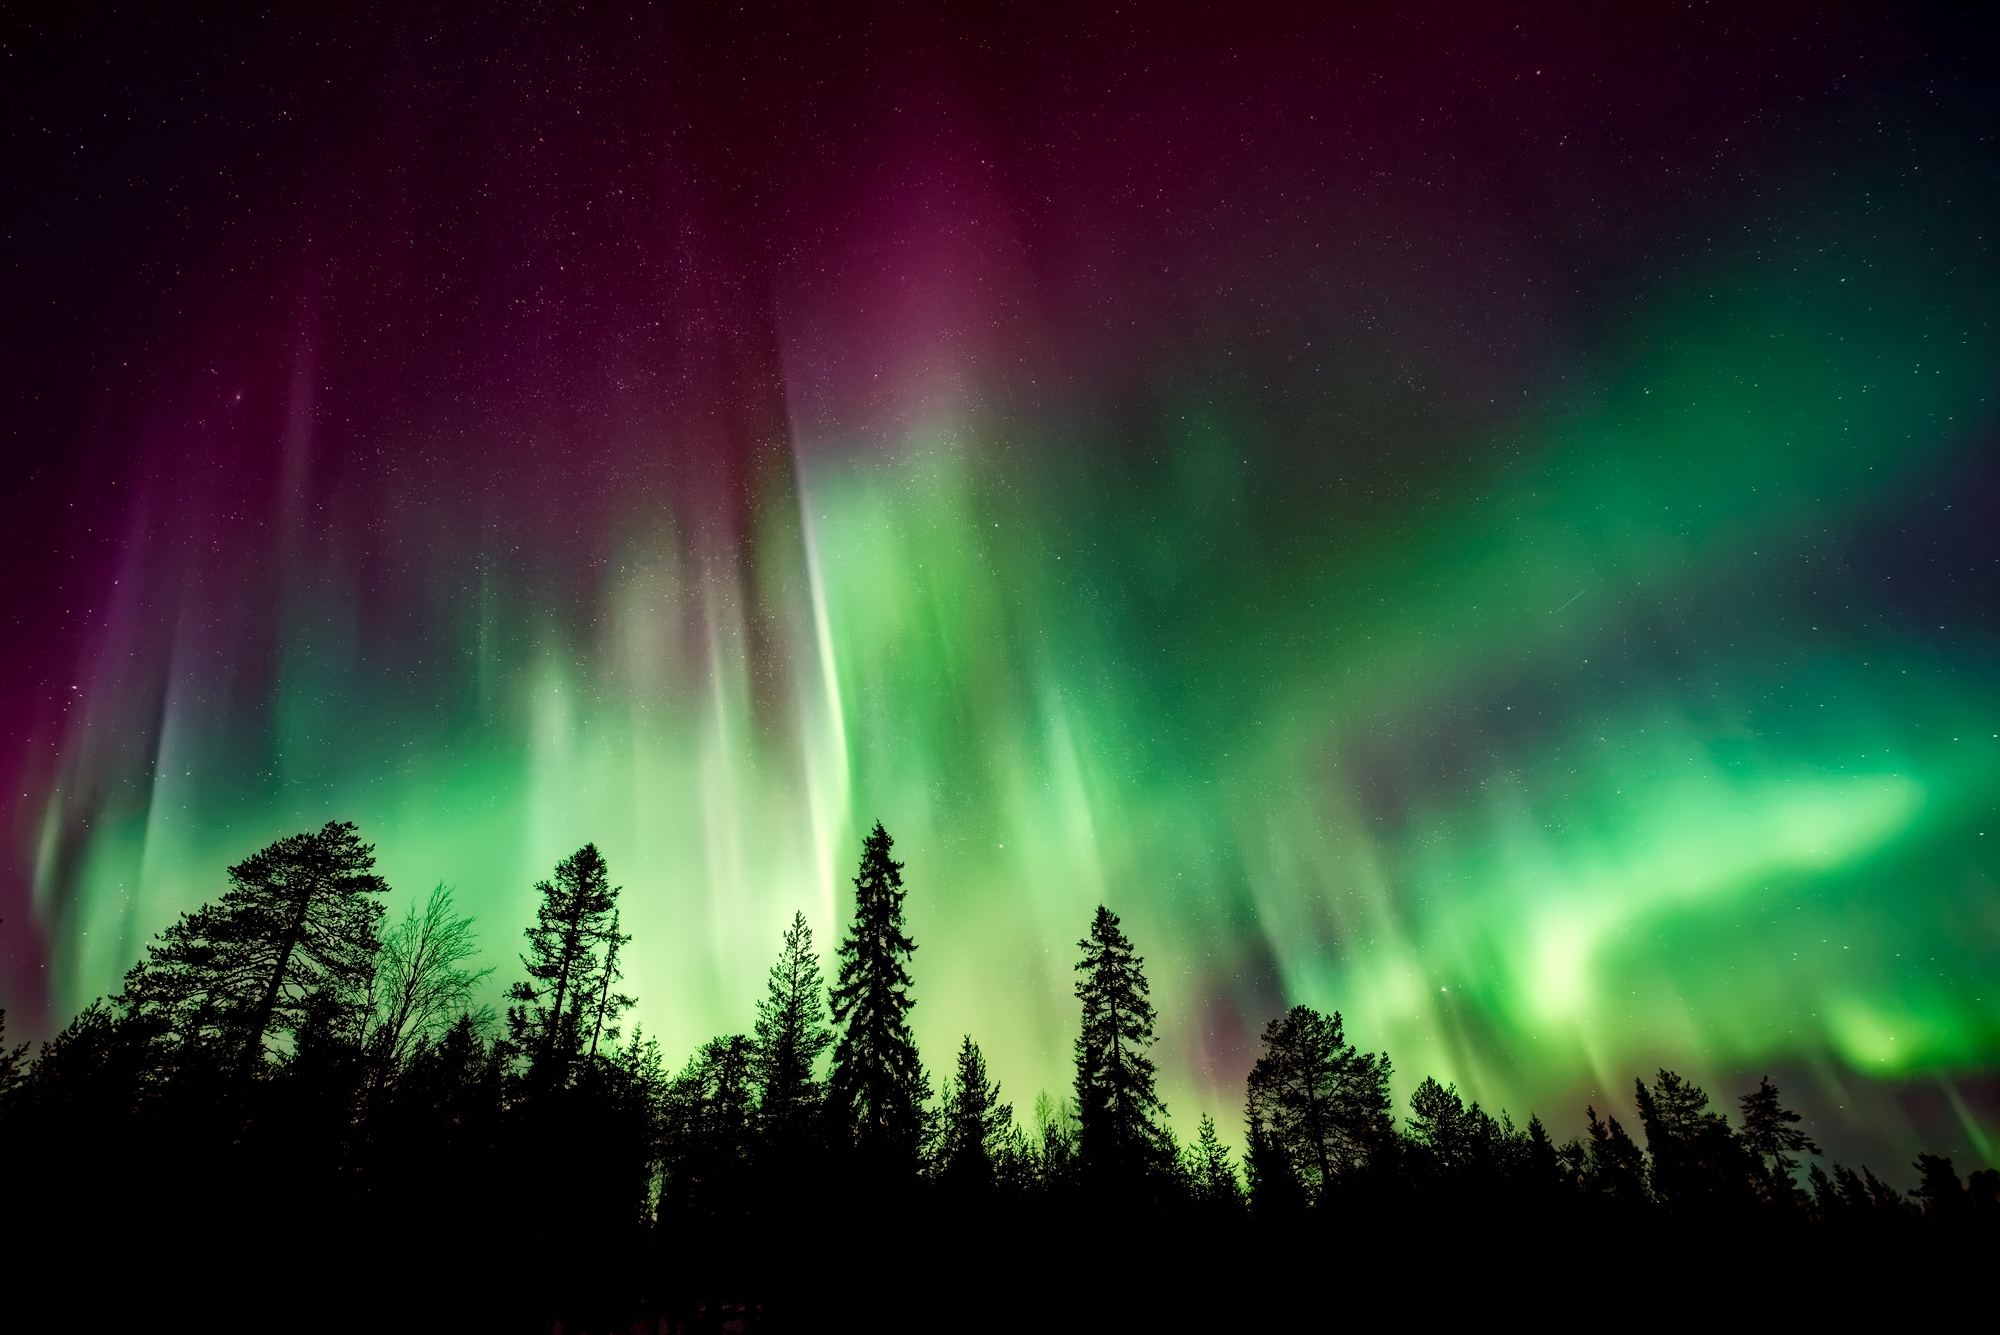 A second image of Northern Lights